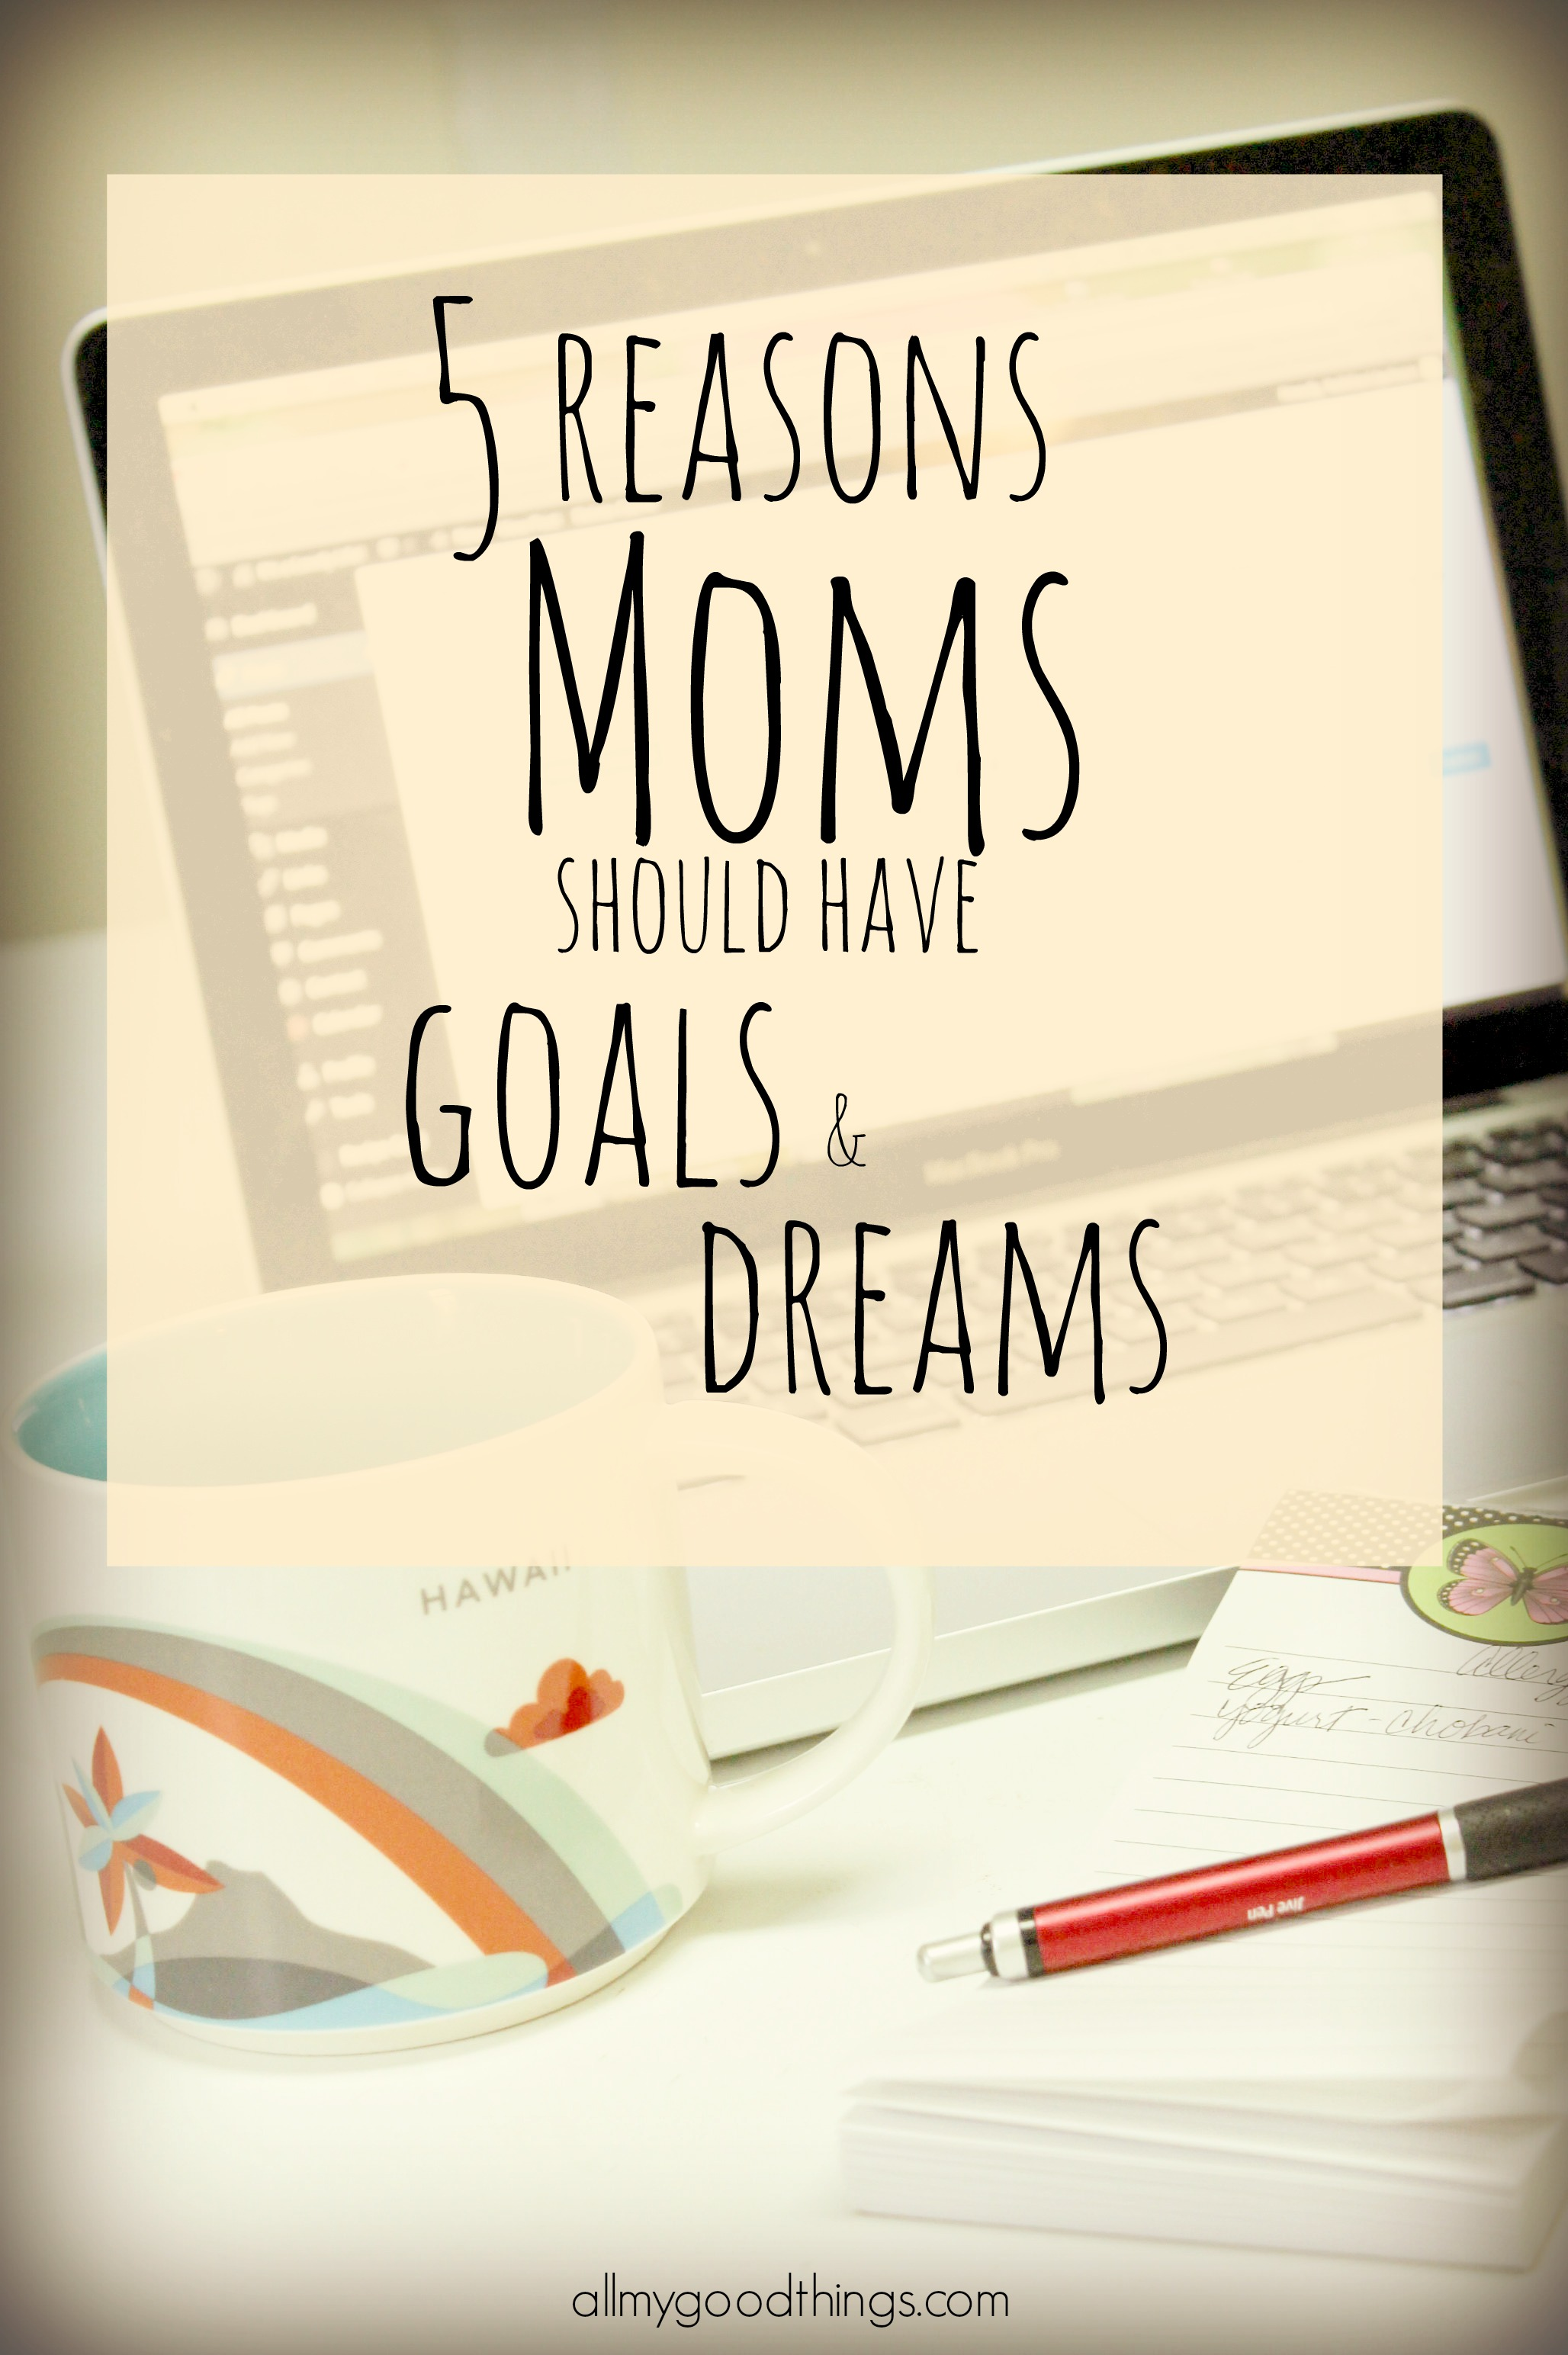 5 Reasons Moms Should Have Goals & Dreams Just for Herself